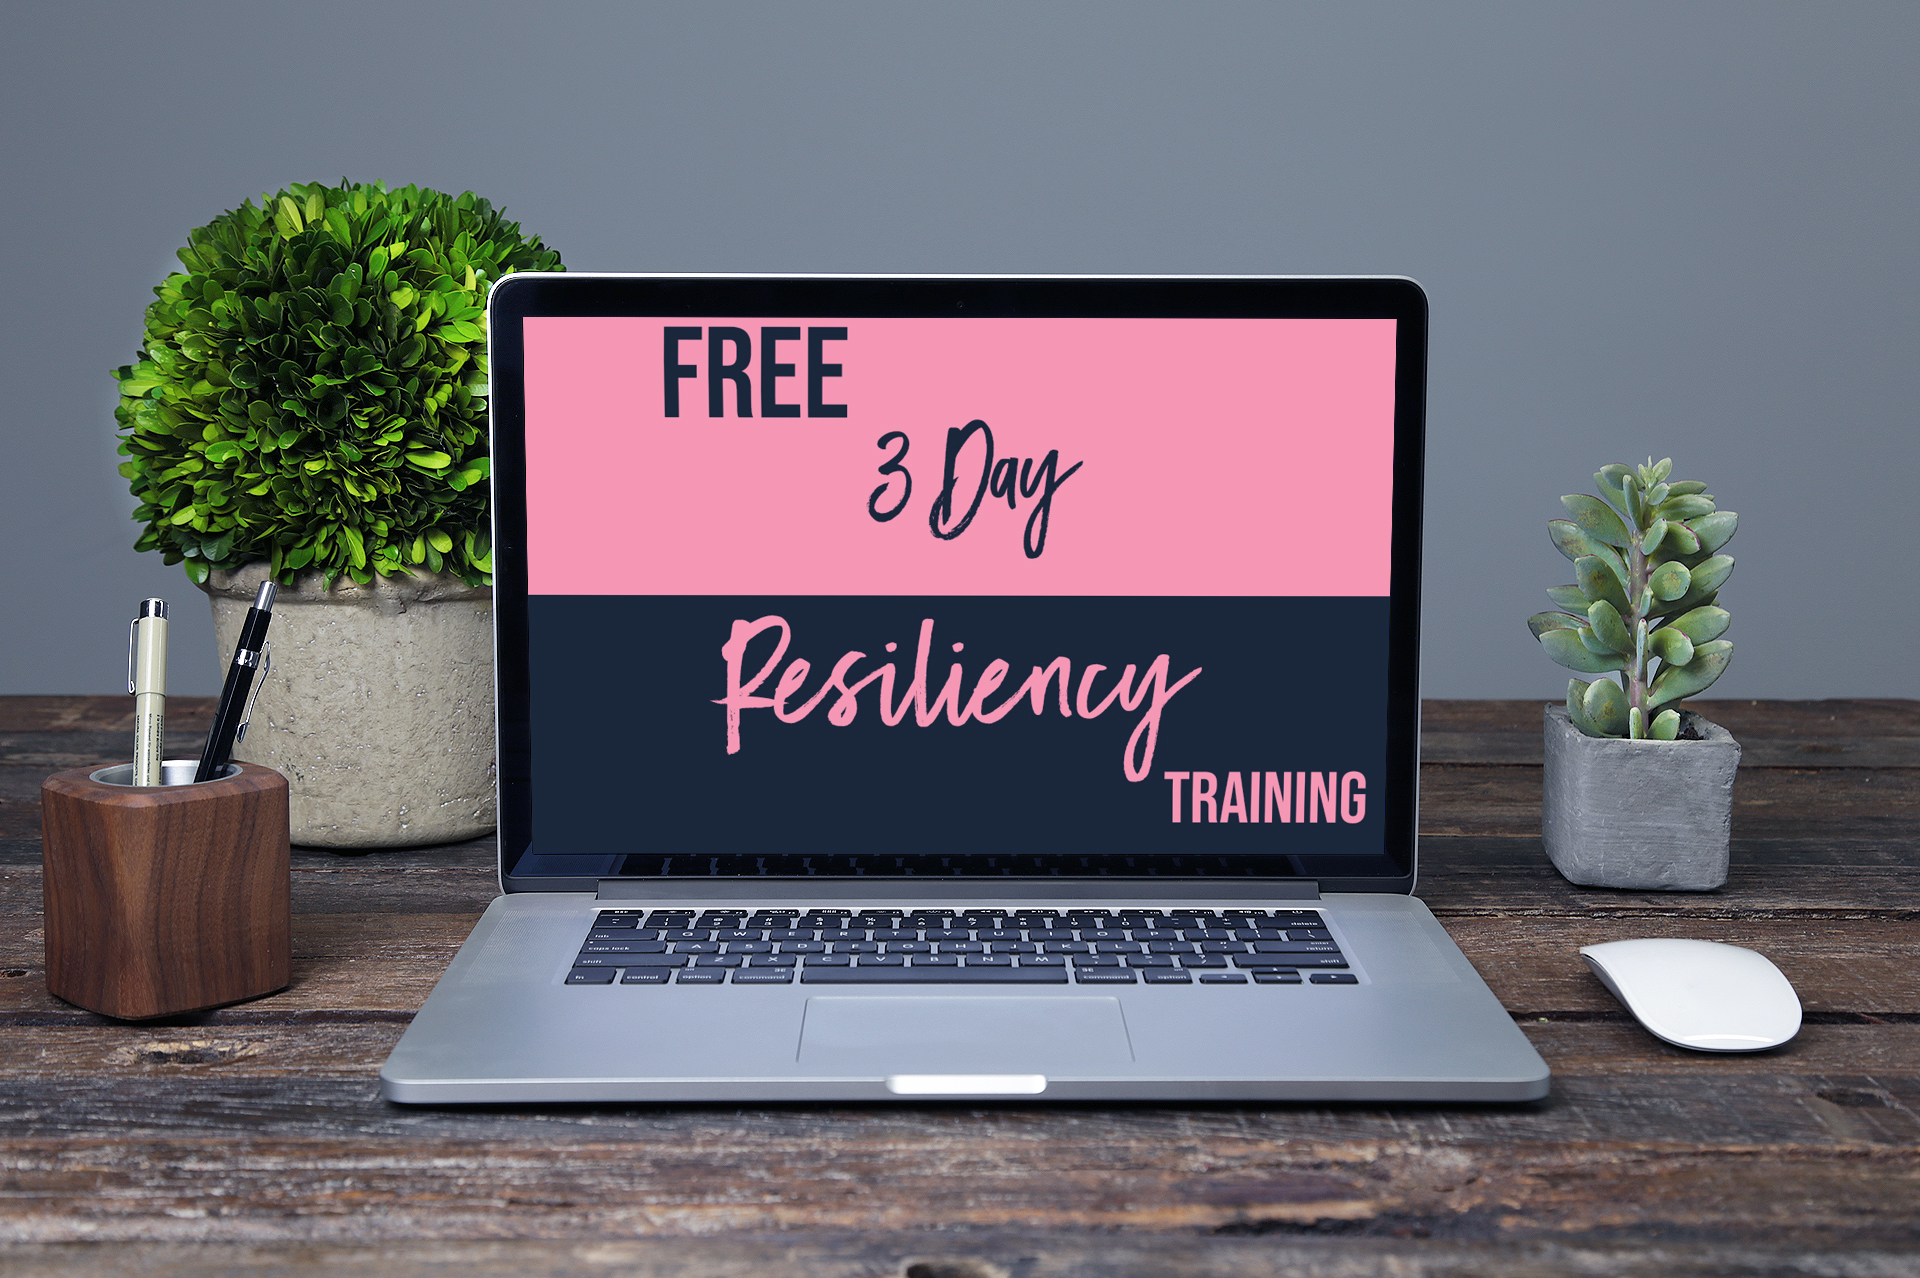 Get the rest of the Resiliency Training